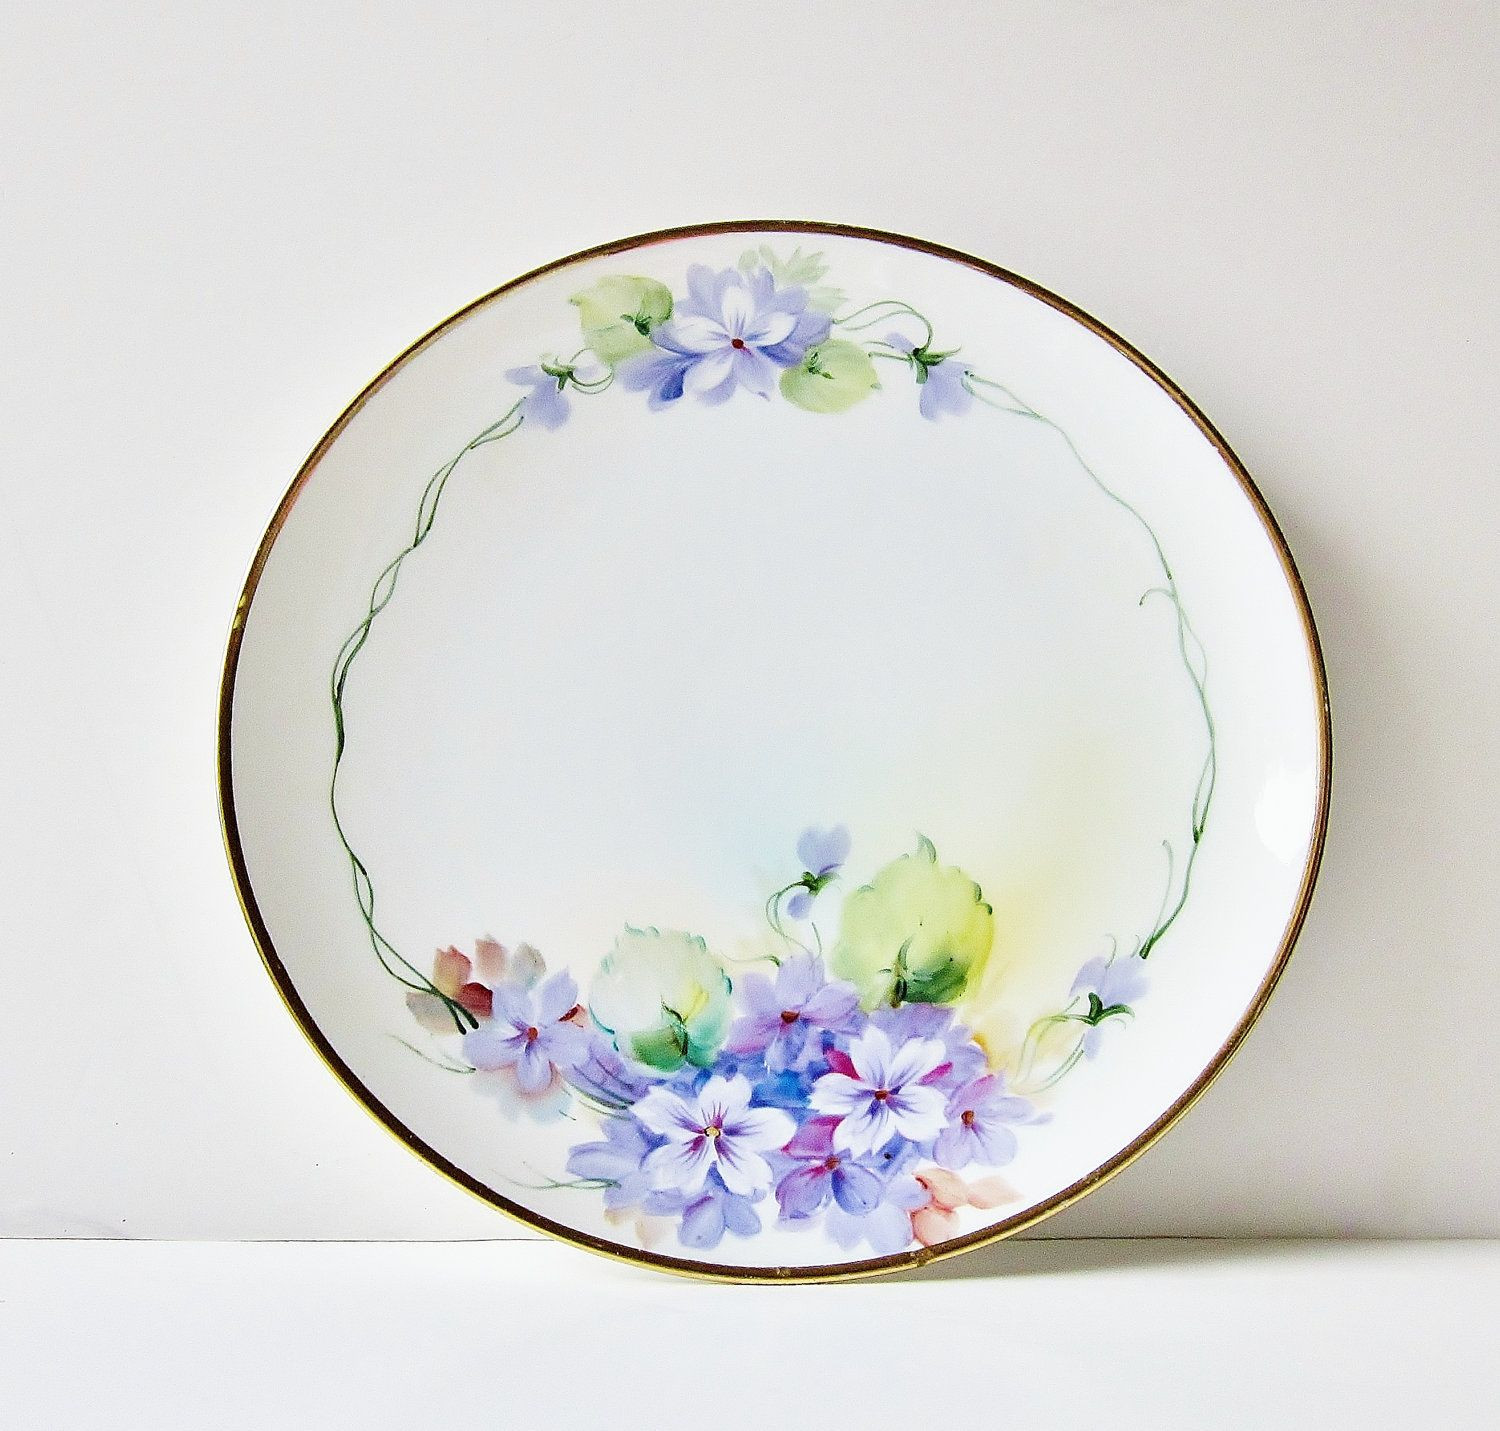 decorative vases and plates of hand painted violets fine china display plate vintage nippon with regard to purple violets porcelain plate vintage nippon china